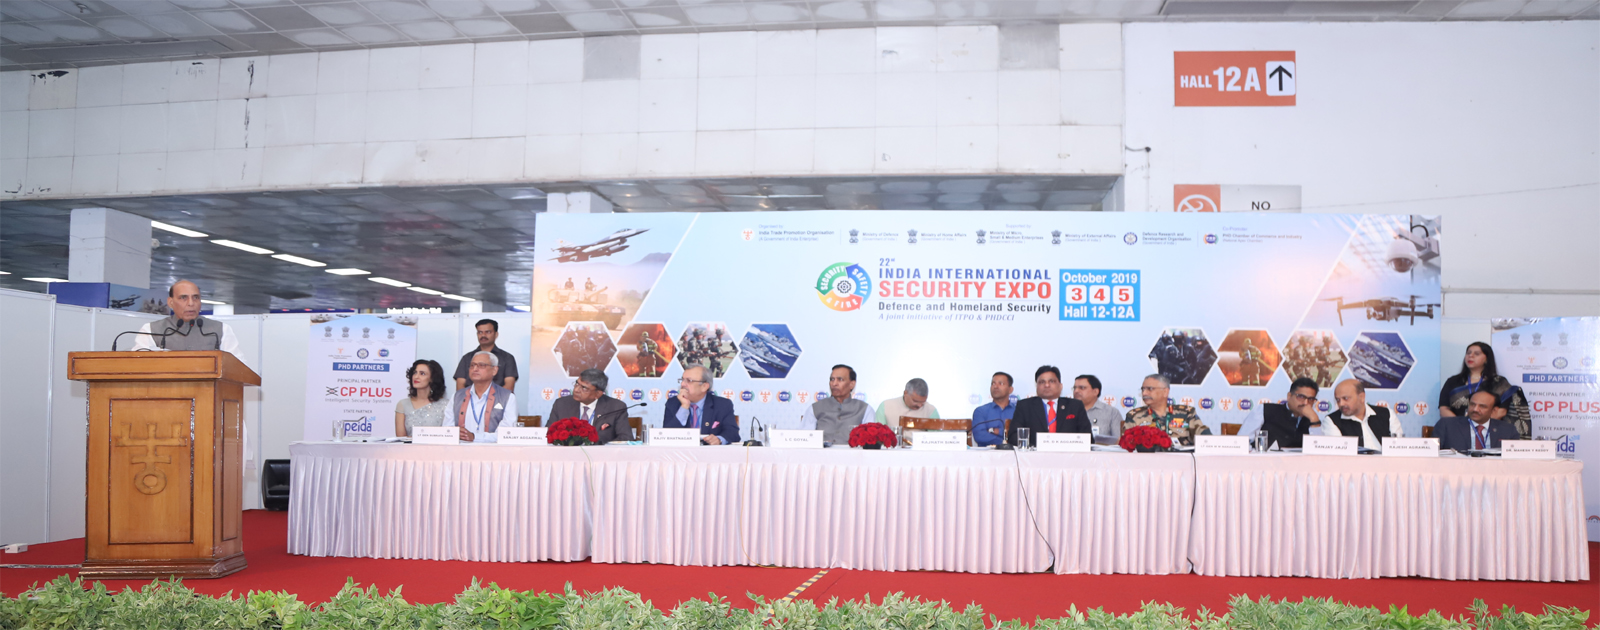 India International Security Expo 2019